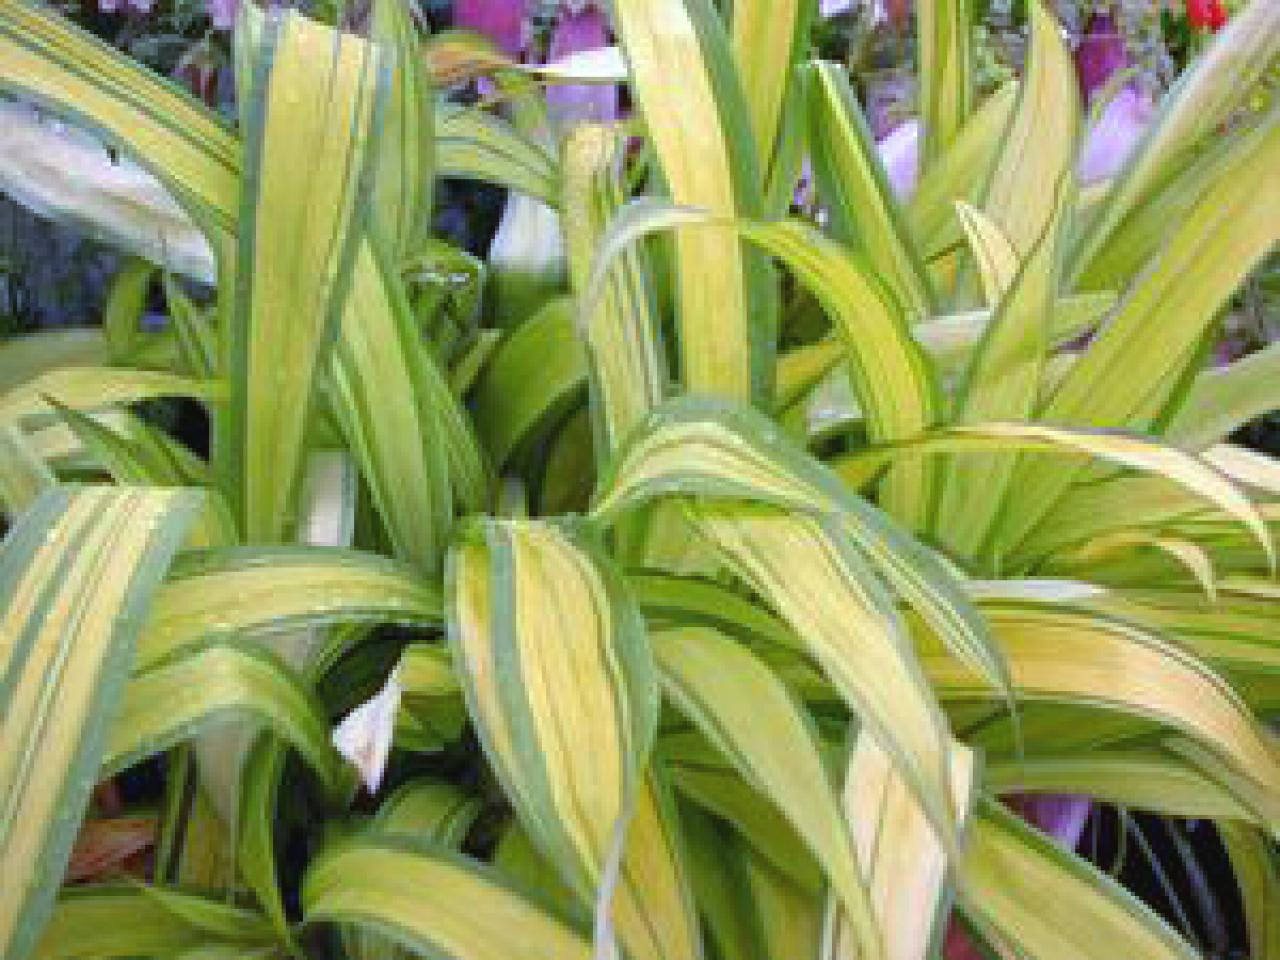 Ornamental grasses zone 5 - Grass_bananaboat_walters2